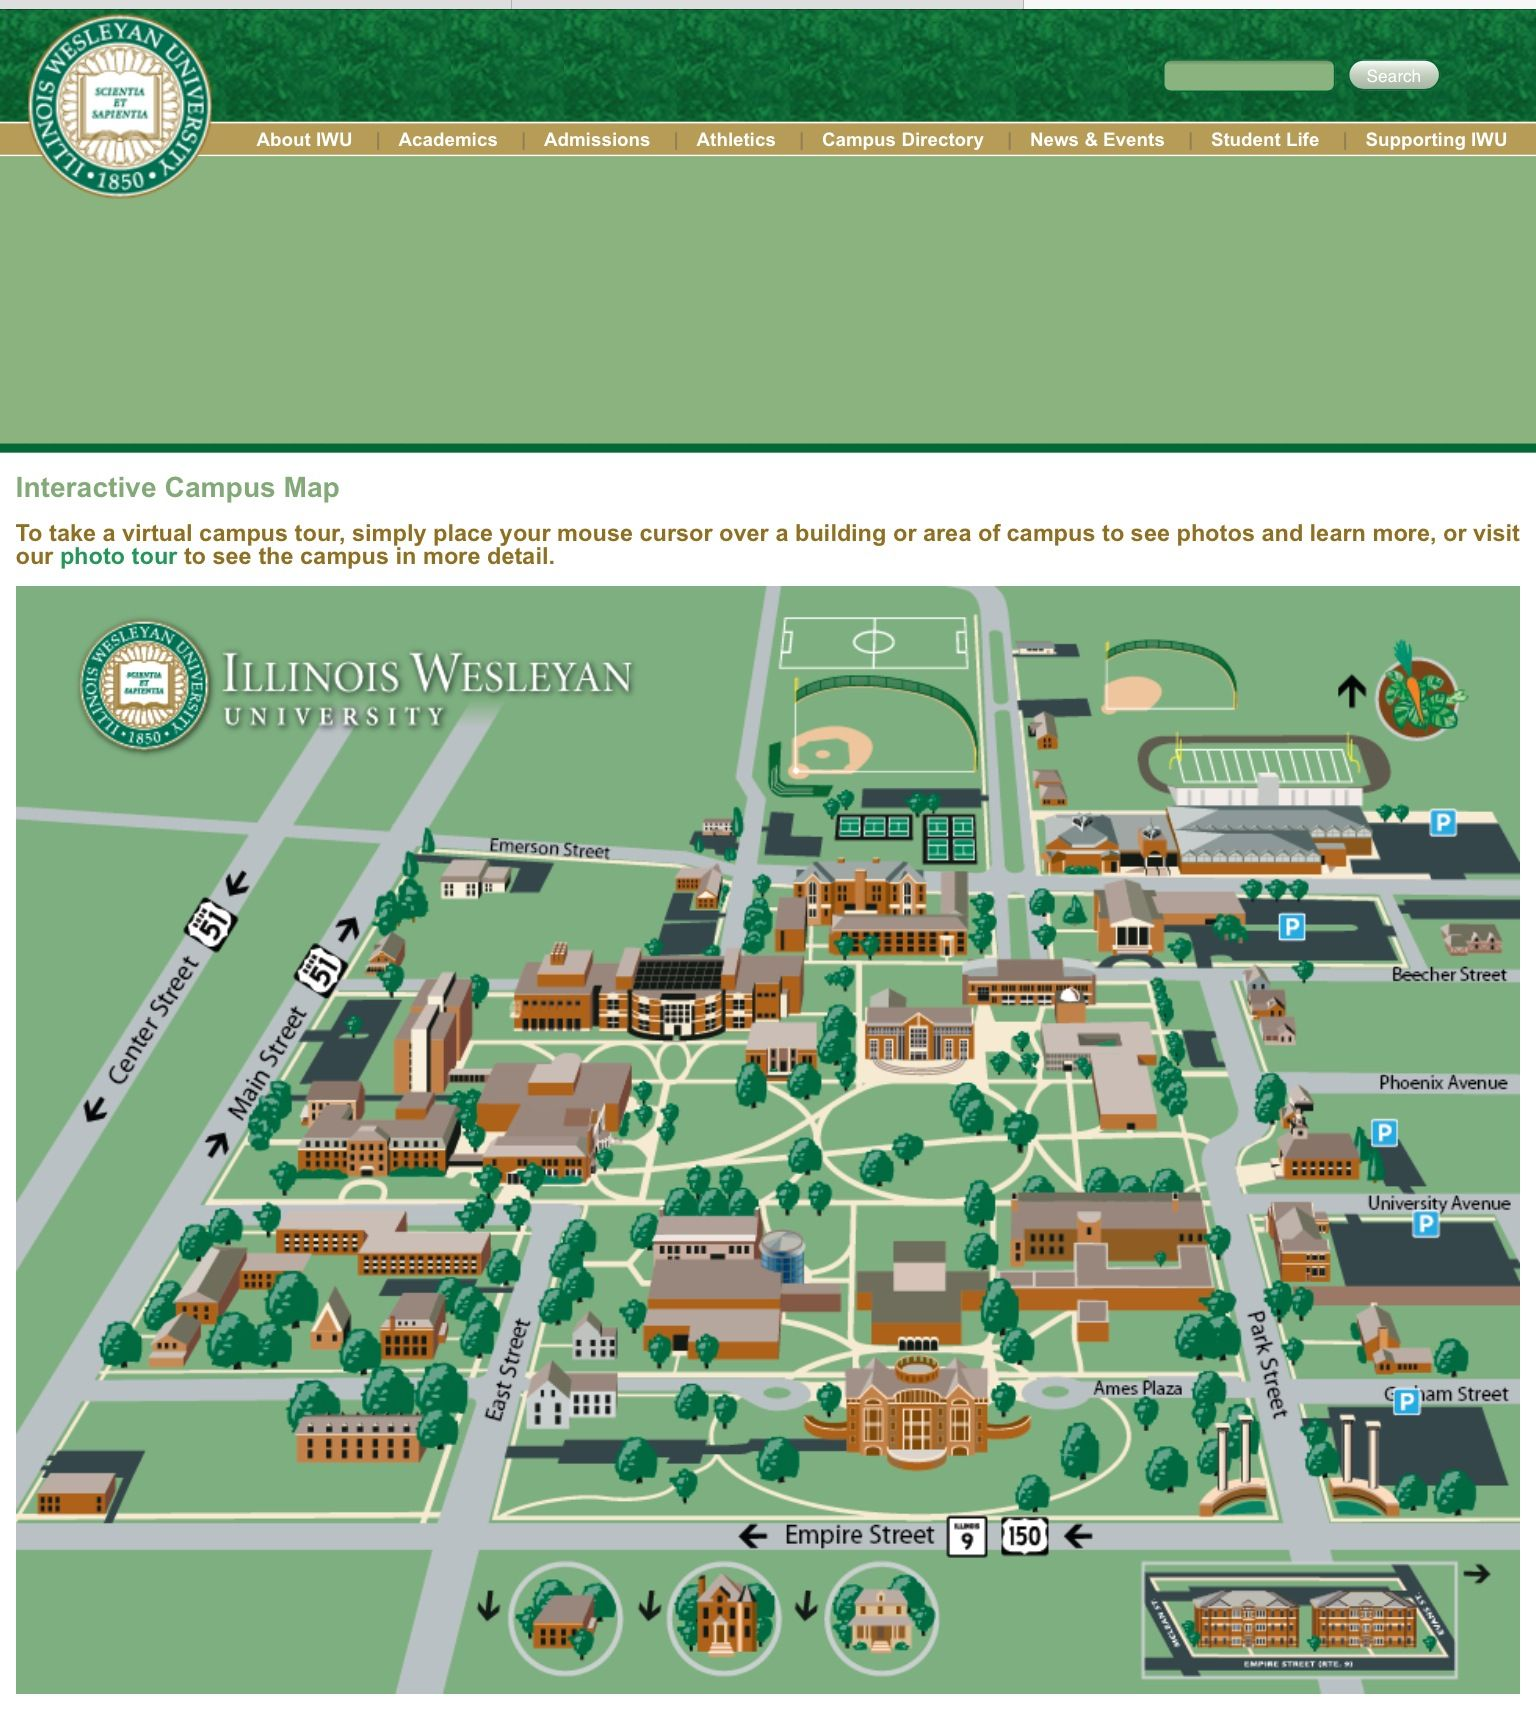 Illinois College Campus Map.Iwu Campus Map Illinois Wesleyan University Pinterest Campus